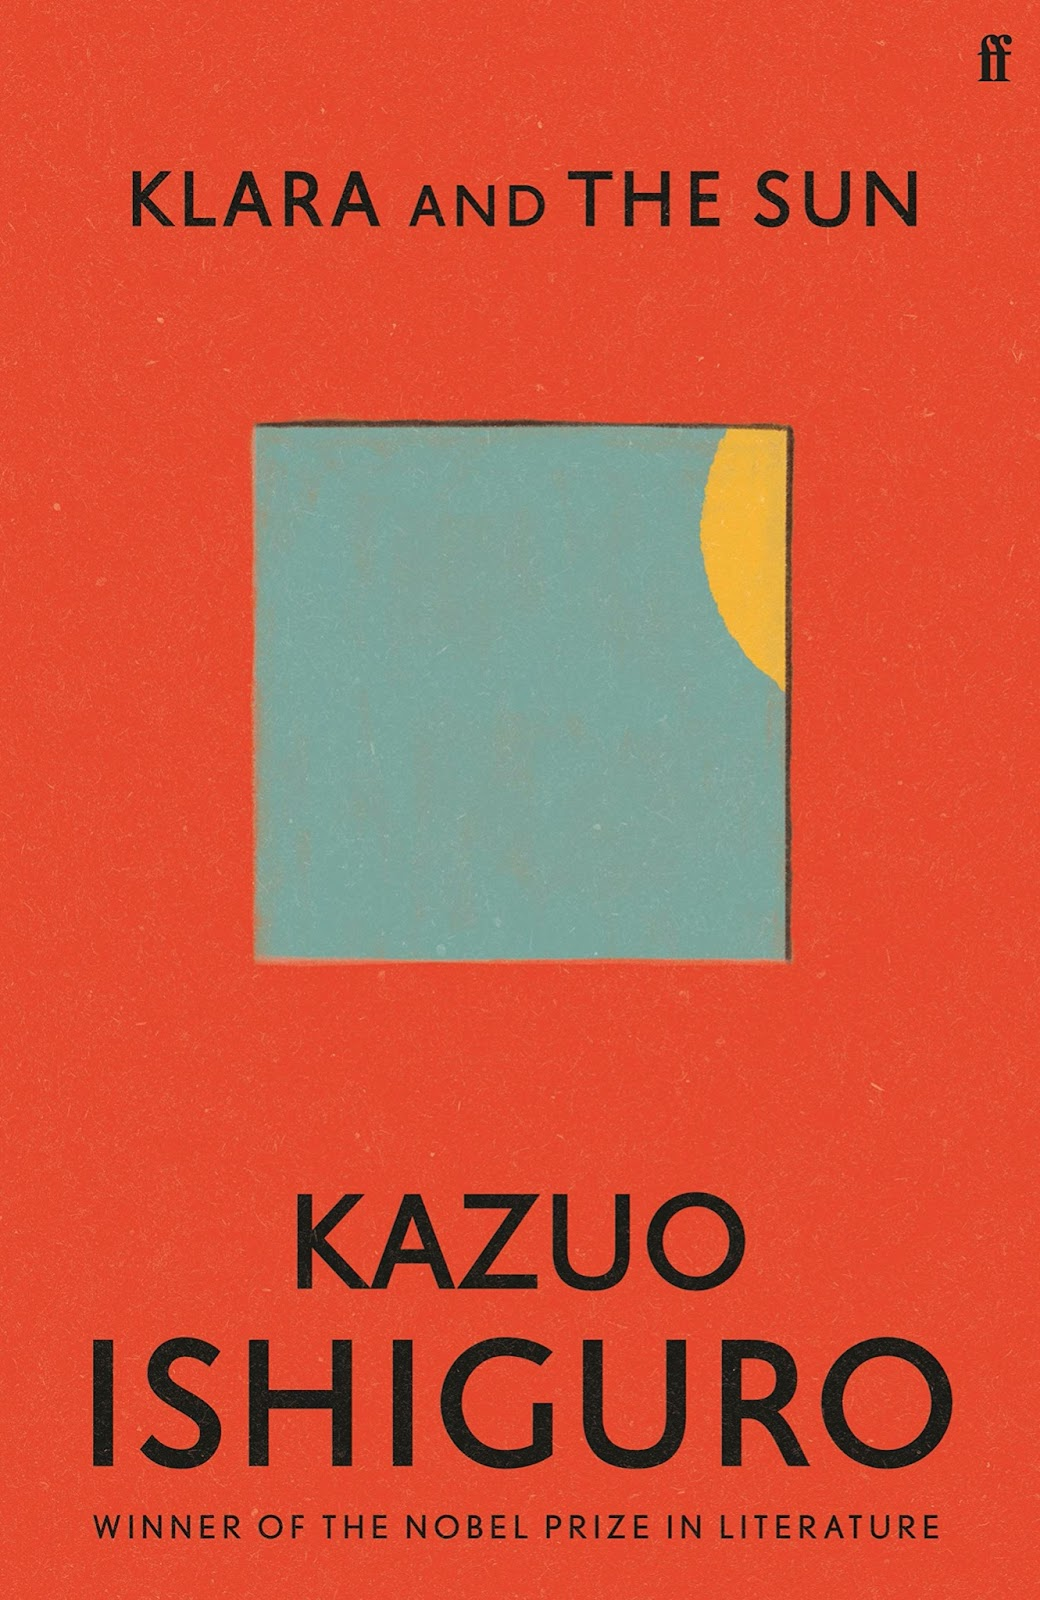 Image contains an orange background with an image in the center of a gray box with a partial yellow sun peeking out of the right. At the top of the image reads Klara and the Sun. At the bottom of the image reads Kazuo Ishiguro.